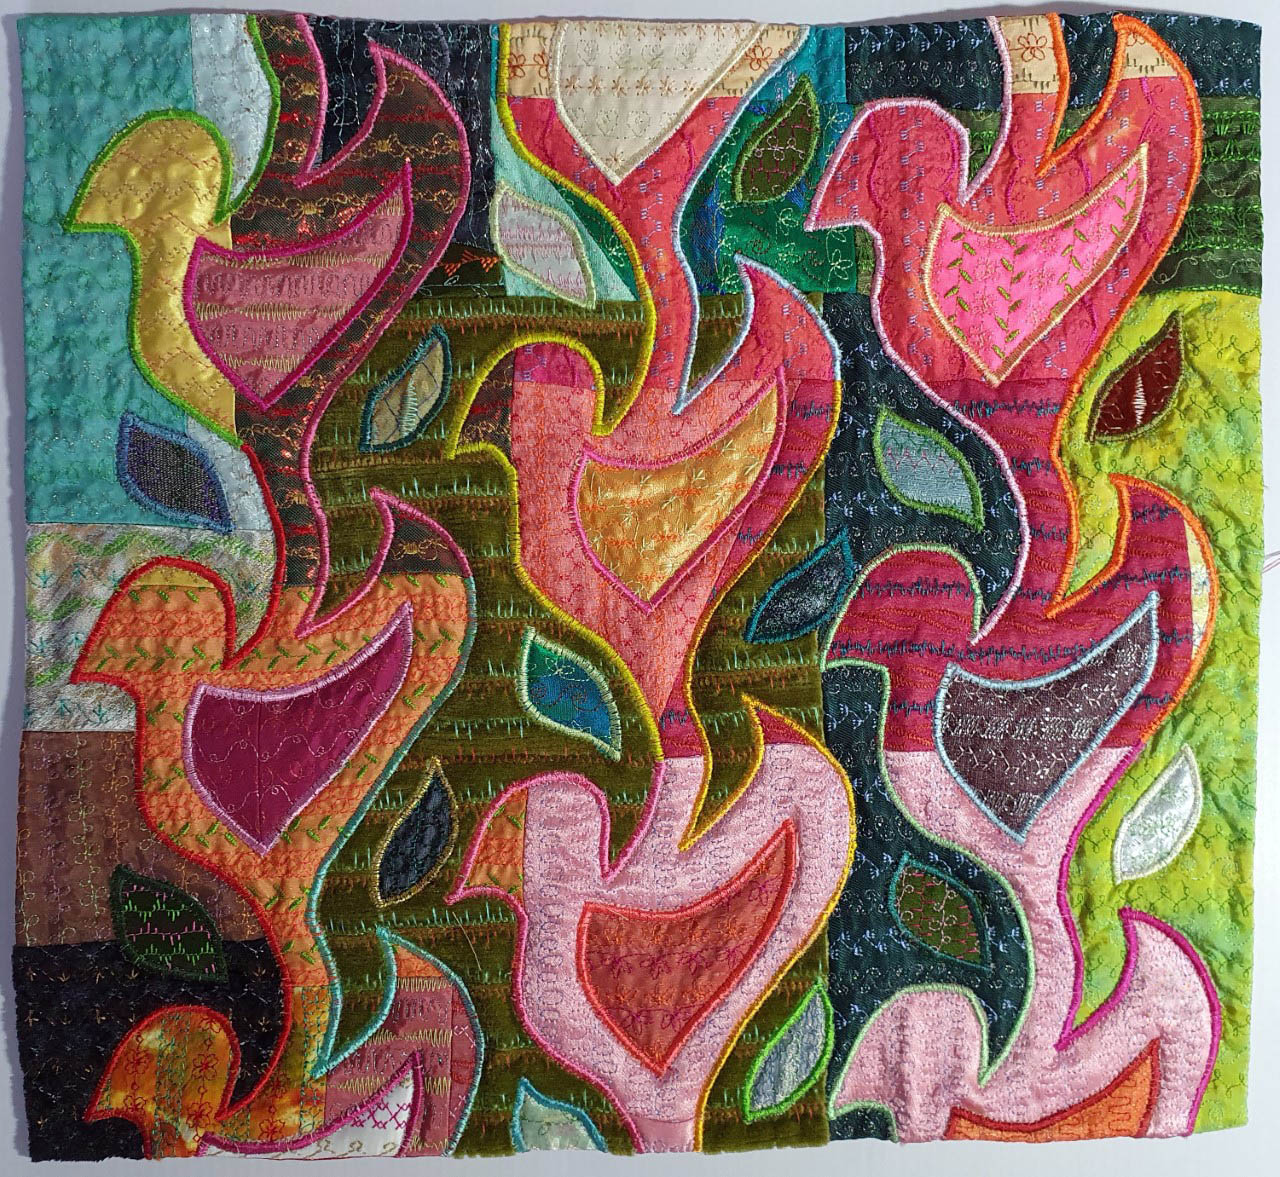 BIRDS IN THE RAINFORSET by Jane Rylands, Cheshie Borders branch, machine embroidery, reverse applique and quilting, Aurifil Competition 2021